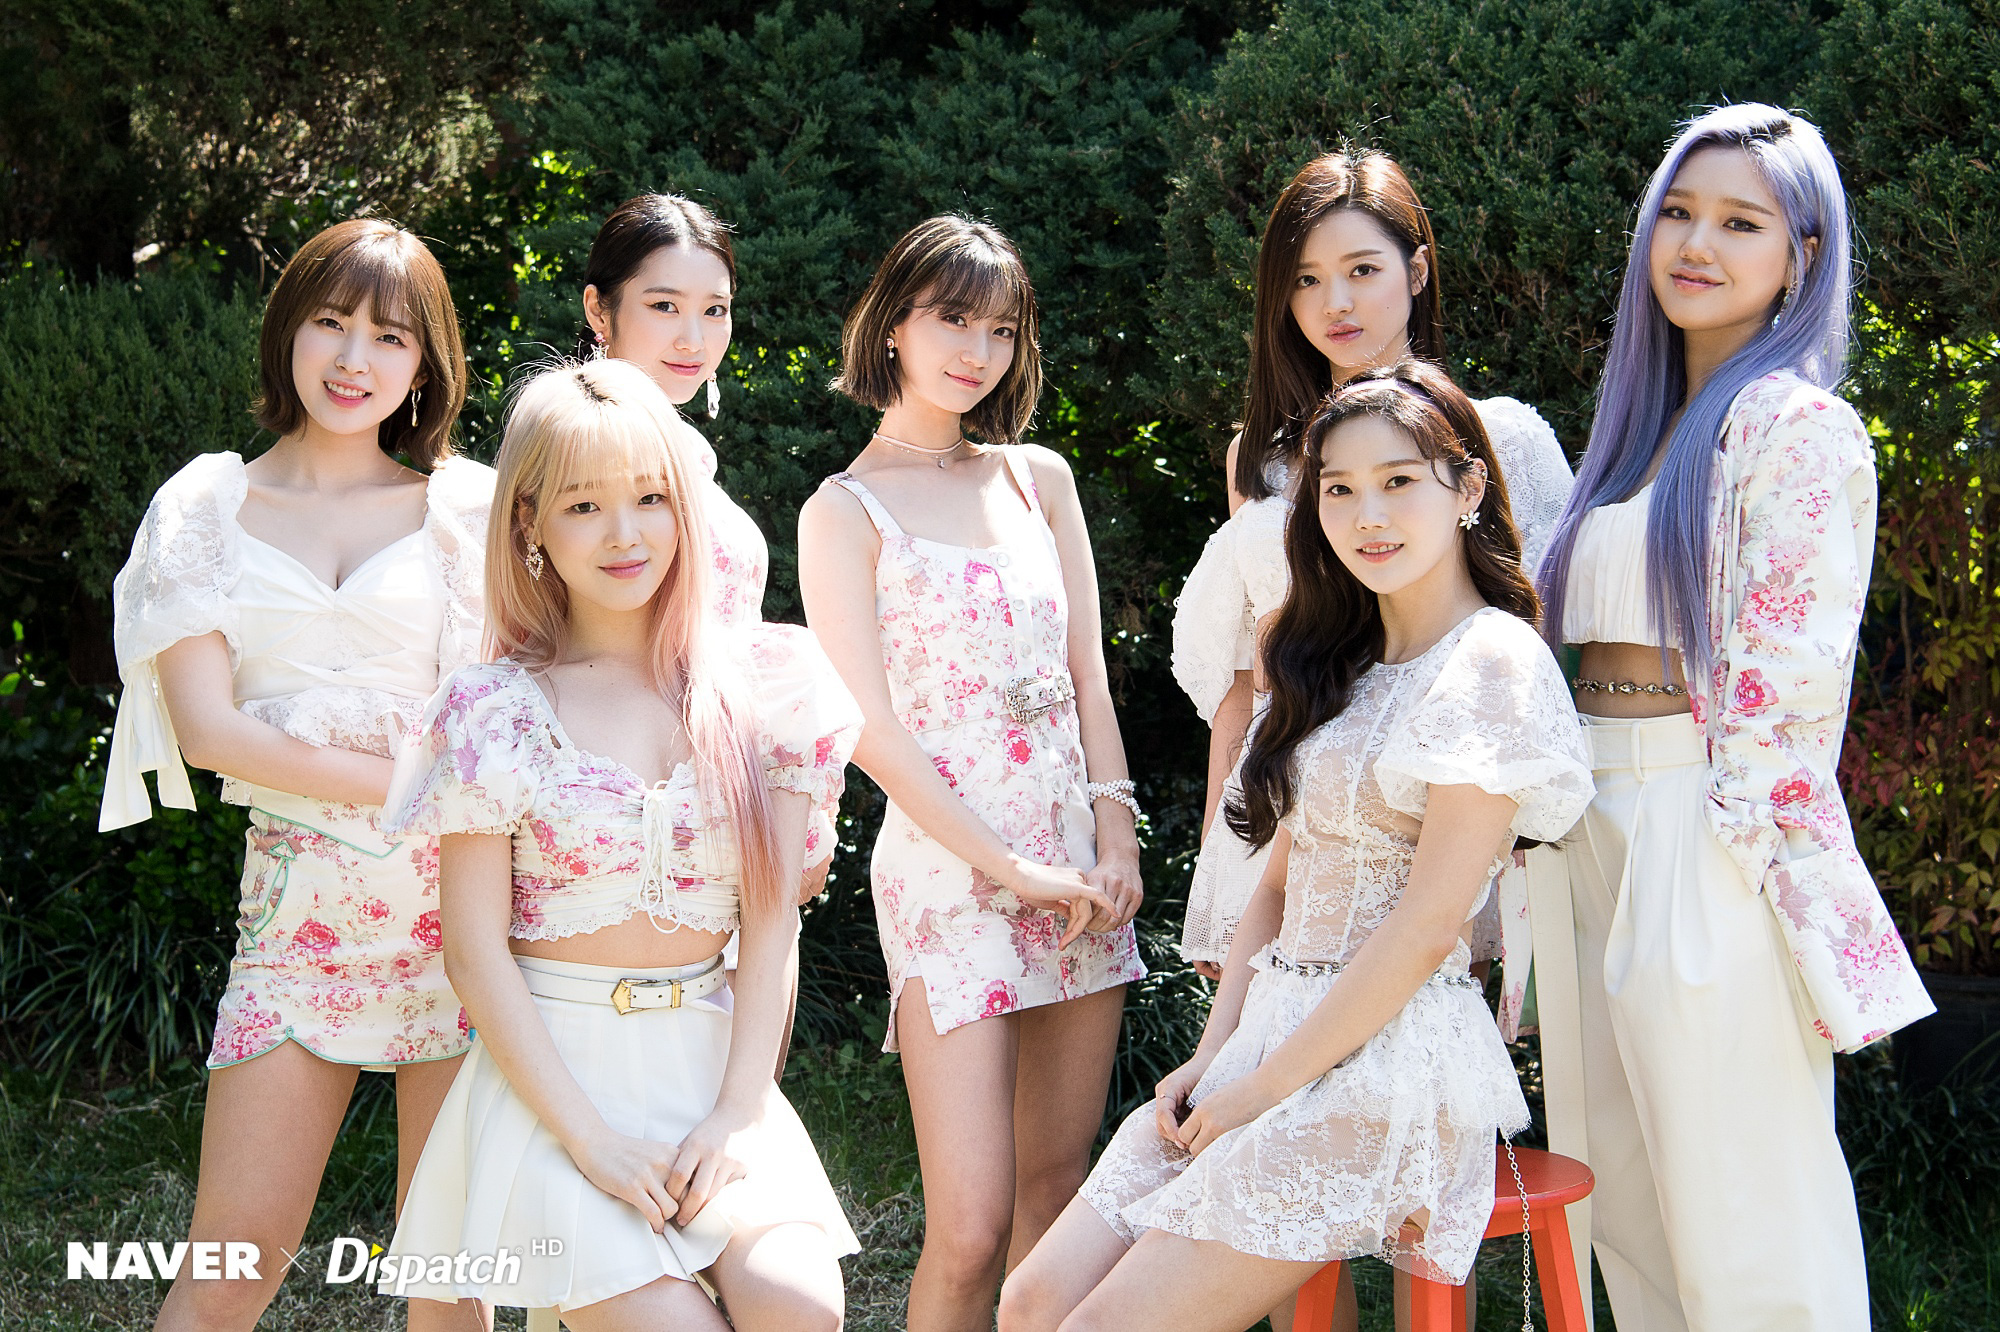 Oh My Girl Wallpapers - Top Free Oh My Girl Backgrounds